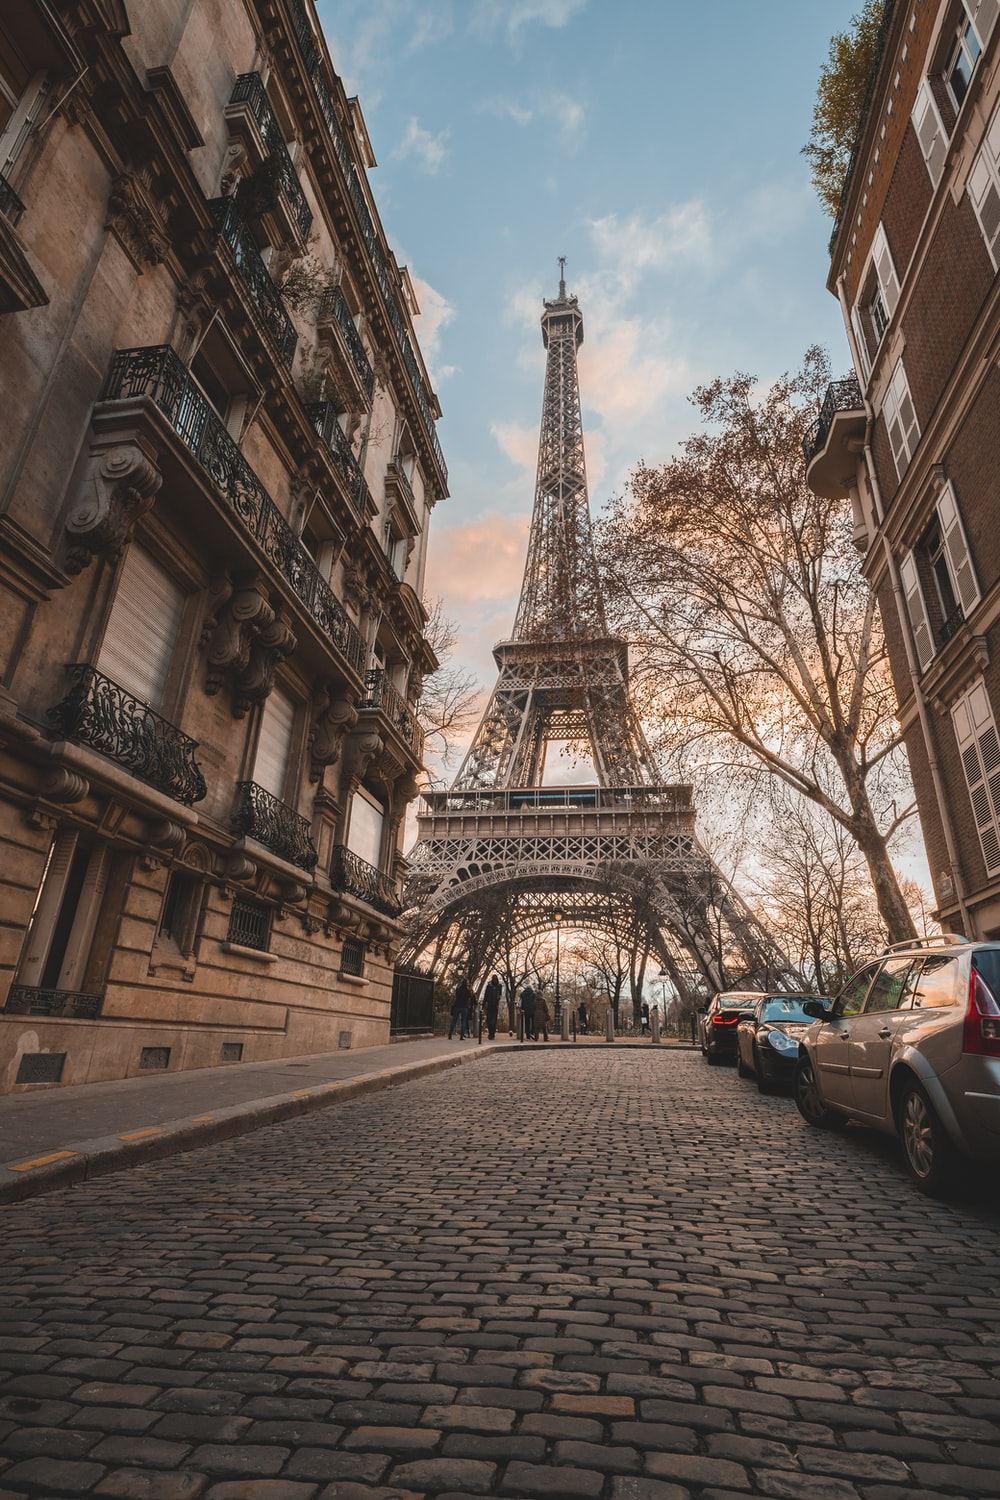 When in France, do as the French do.   Photo by cyril mazarin at unsplash.com